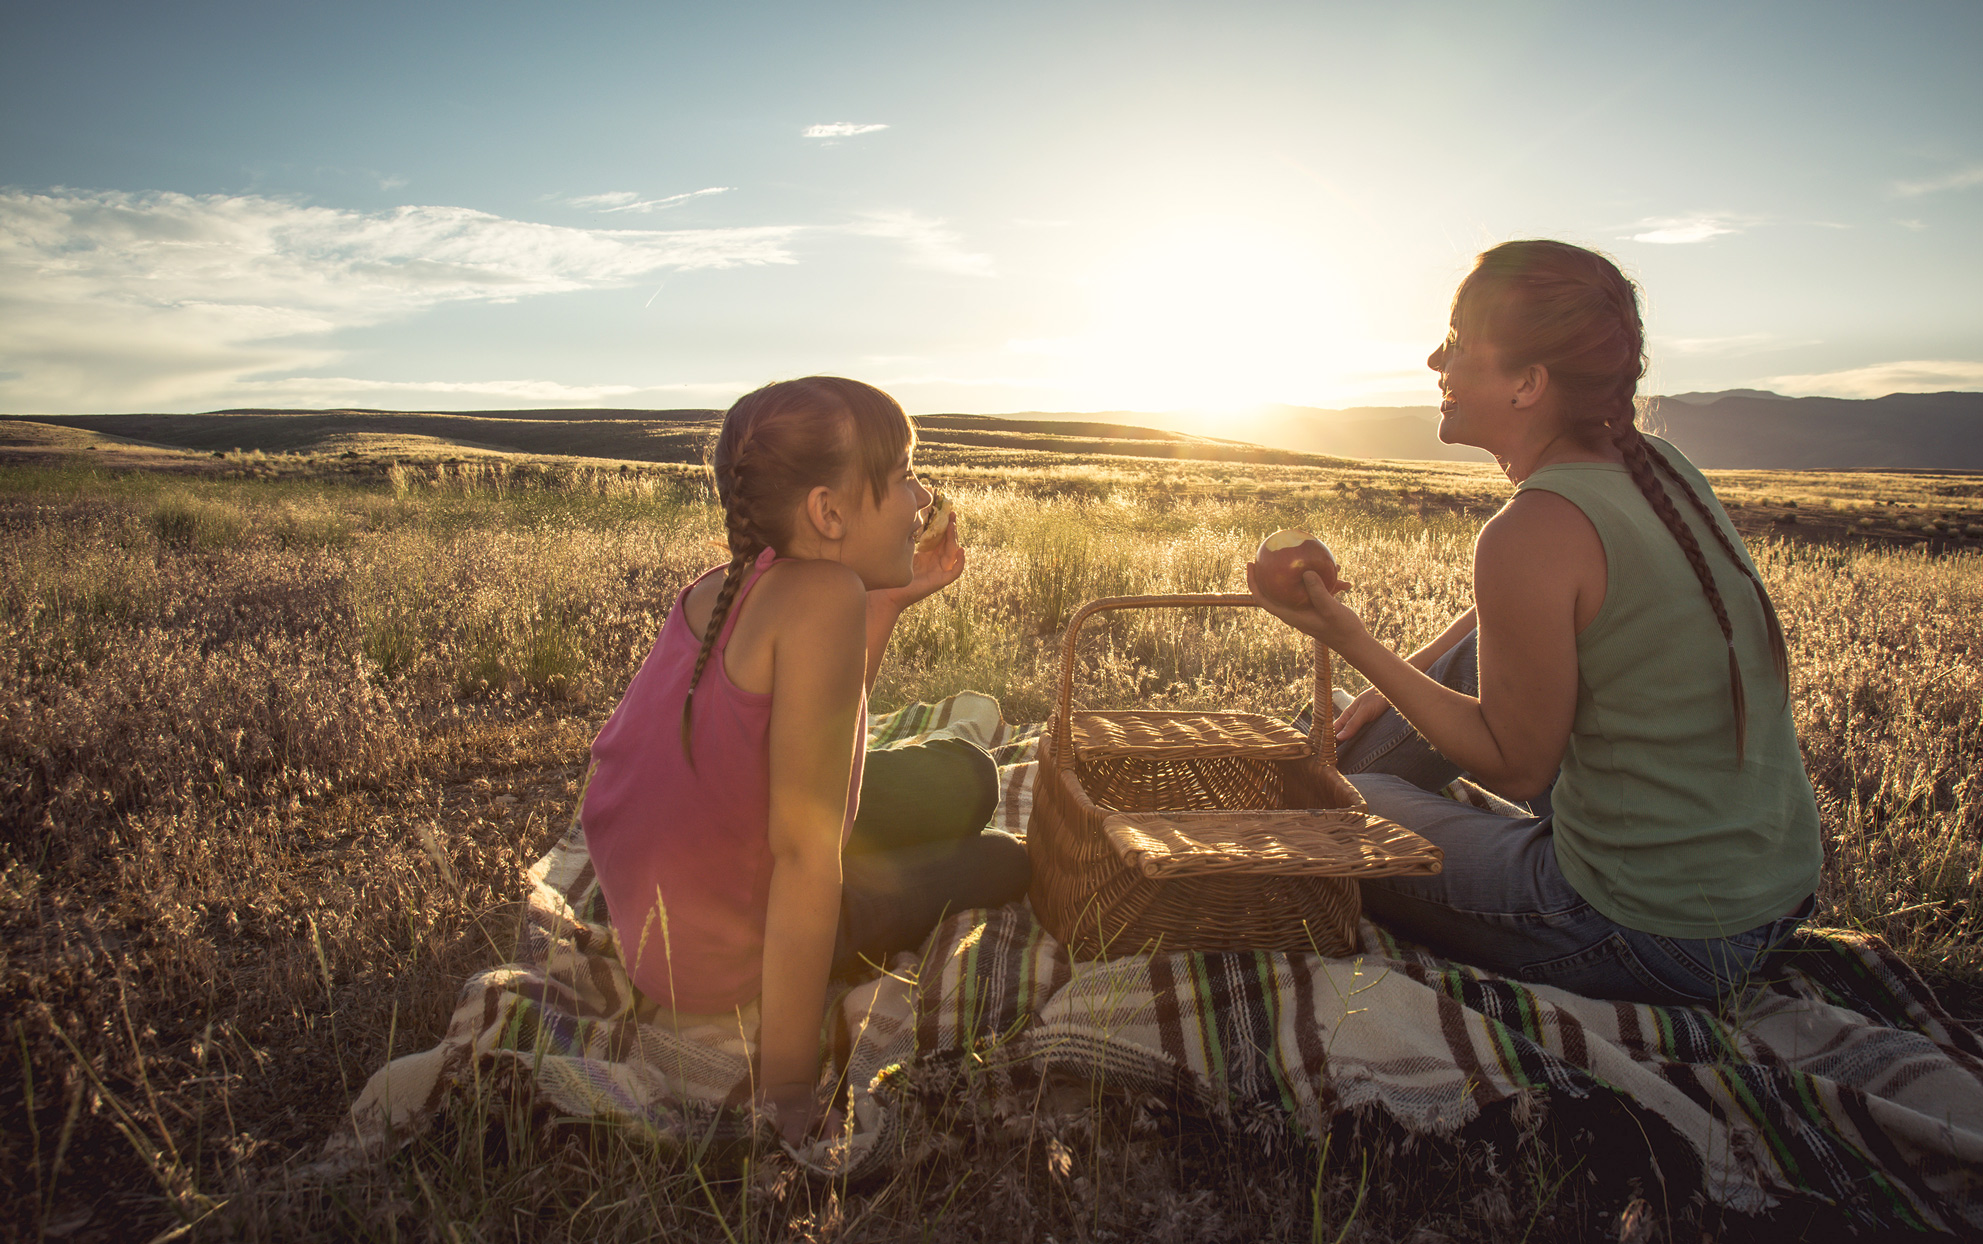 Mother and daughter picnicking in a field